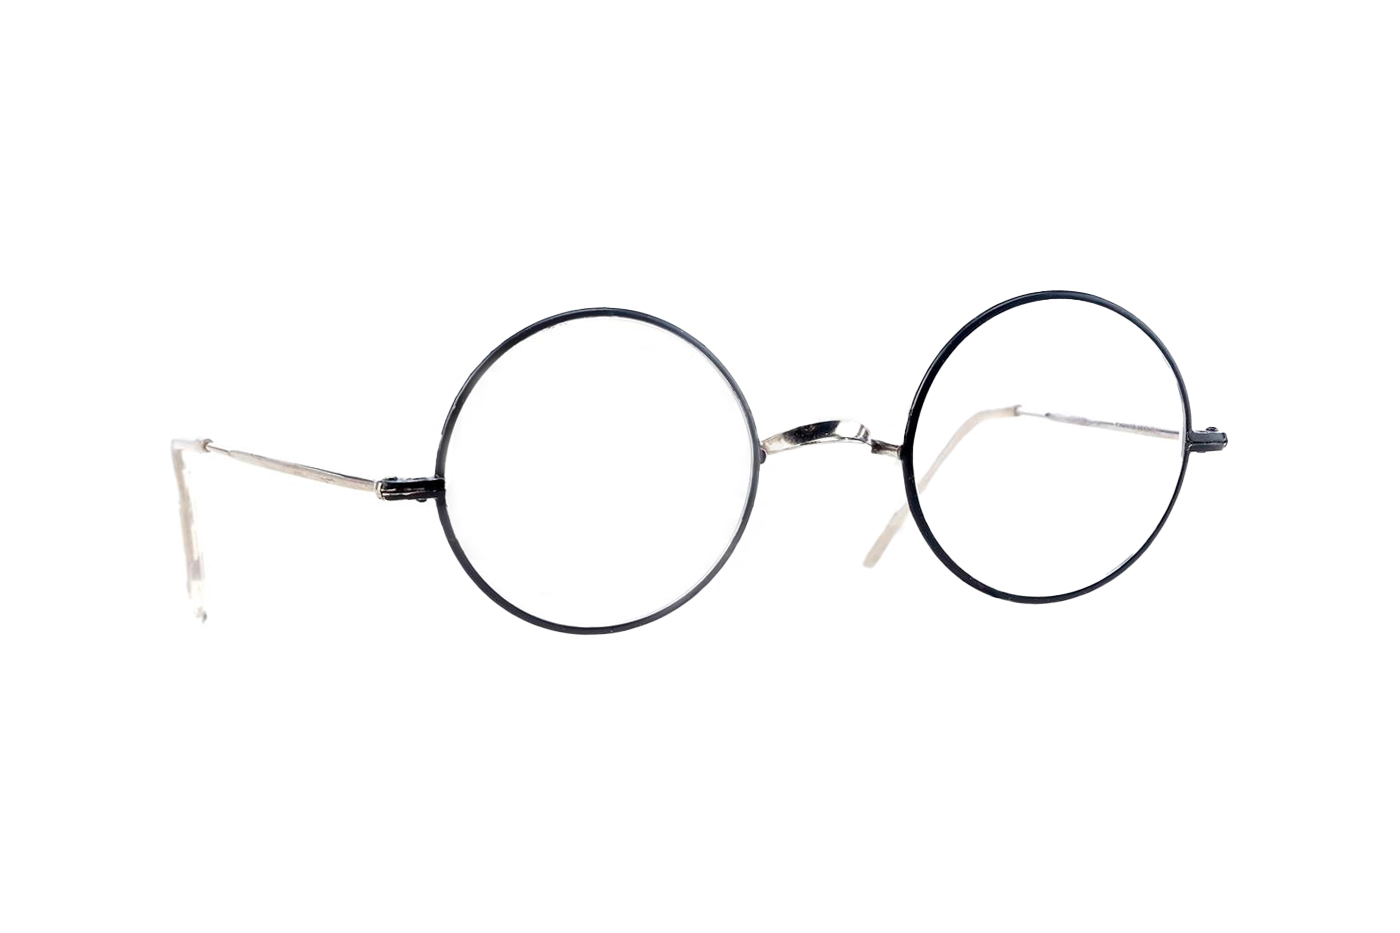 Daniel Radcliffe's glasses from Deathly Hallows